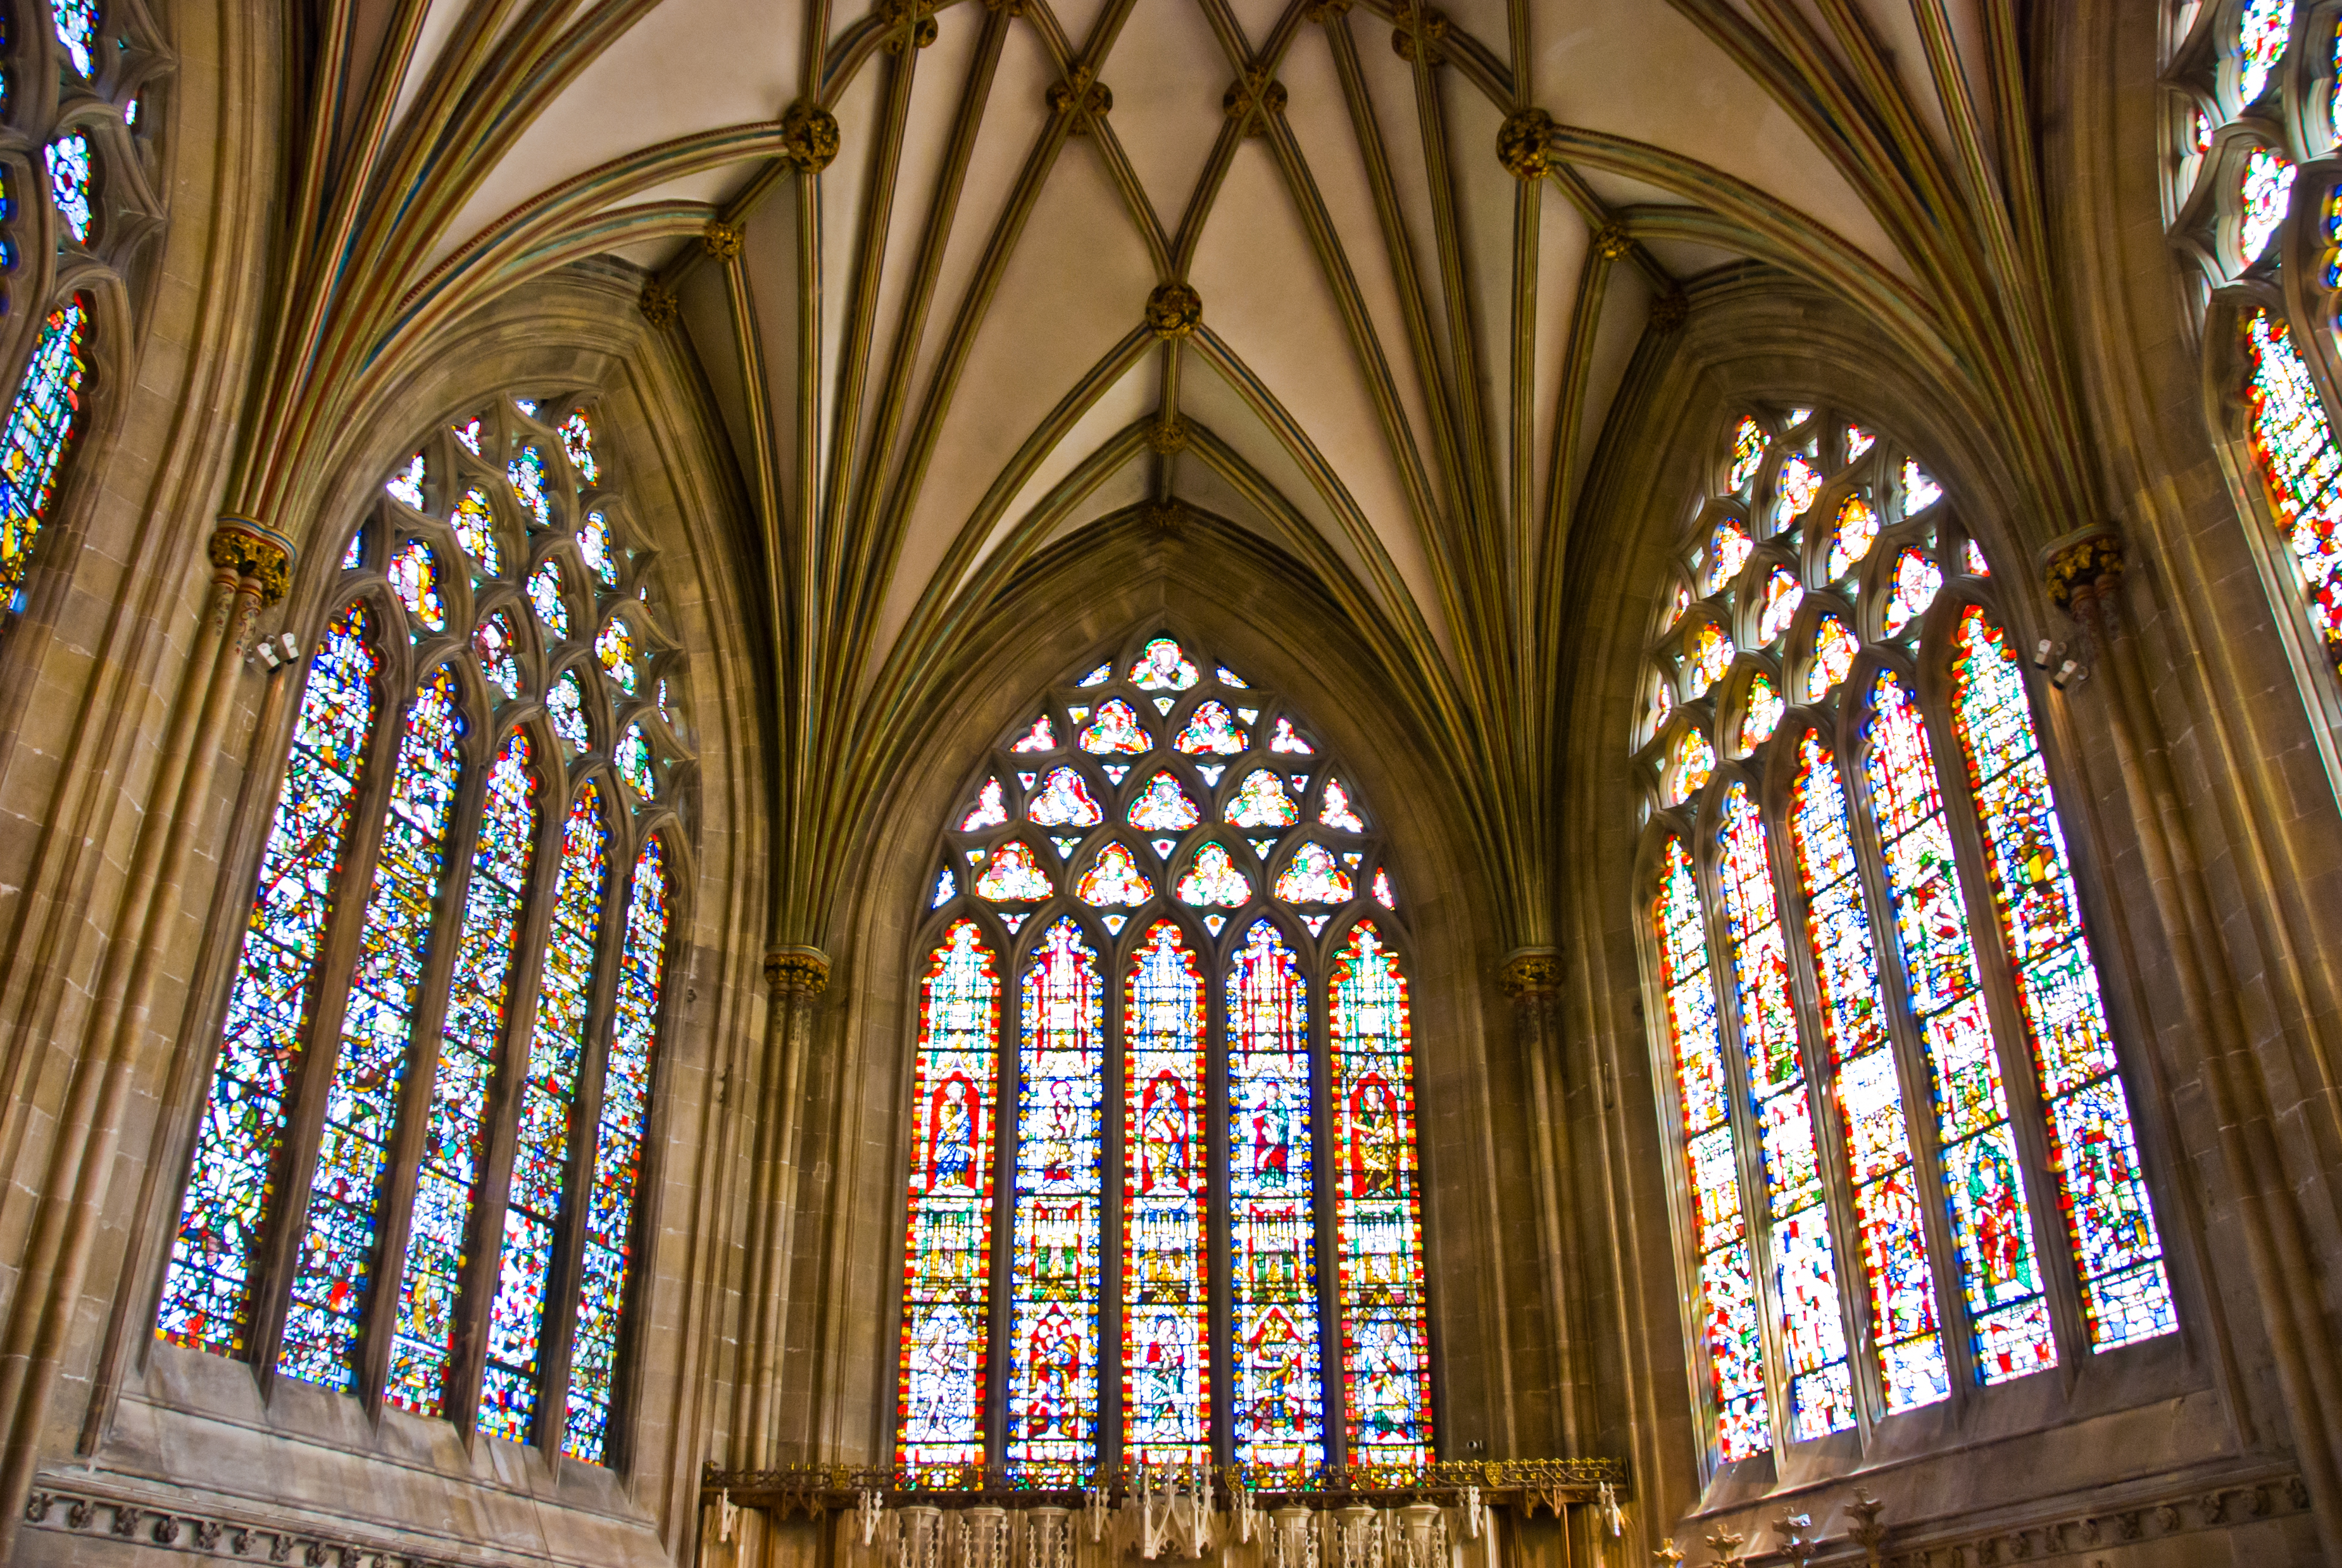 The Medieval Stained Glass of Wells Cathedral (BAR)